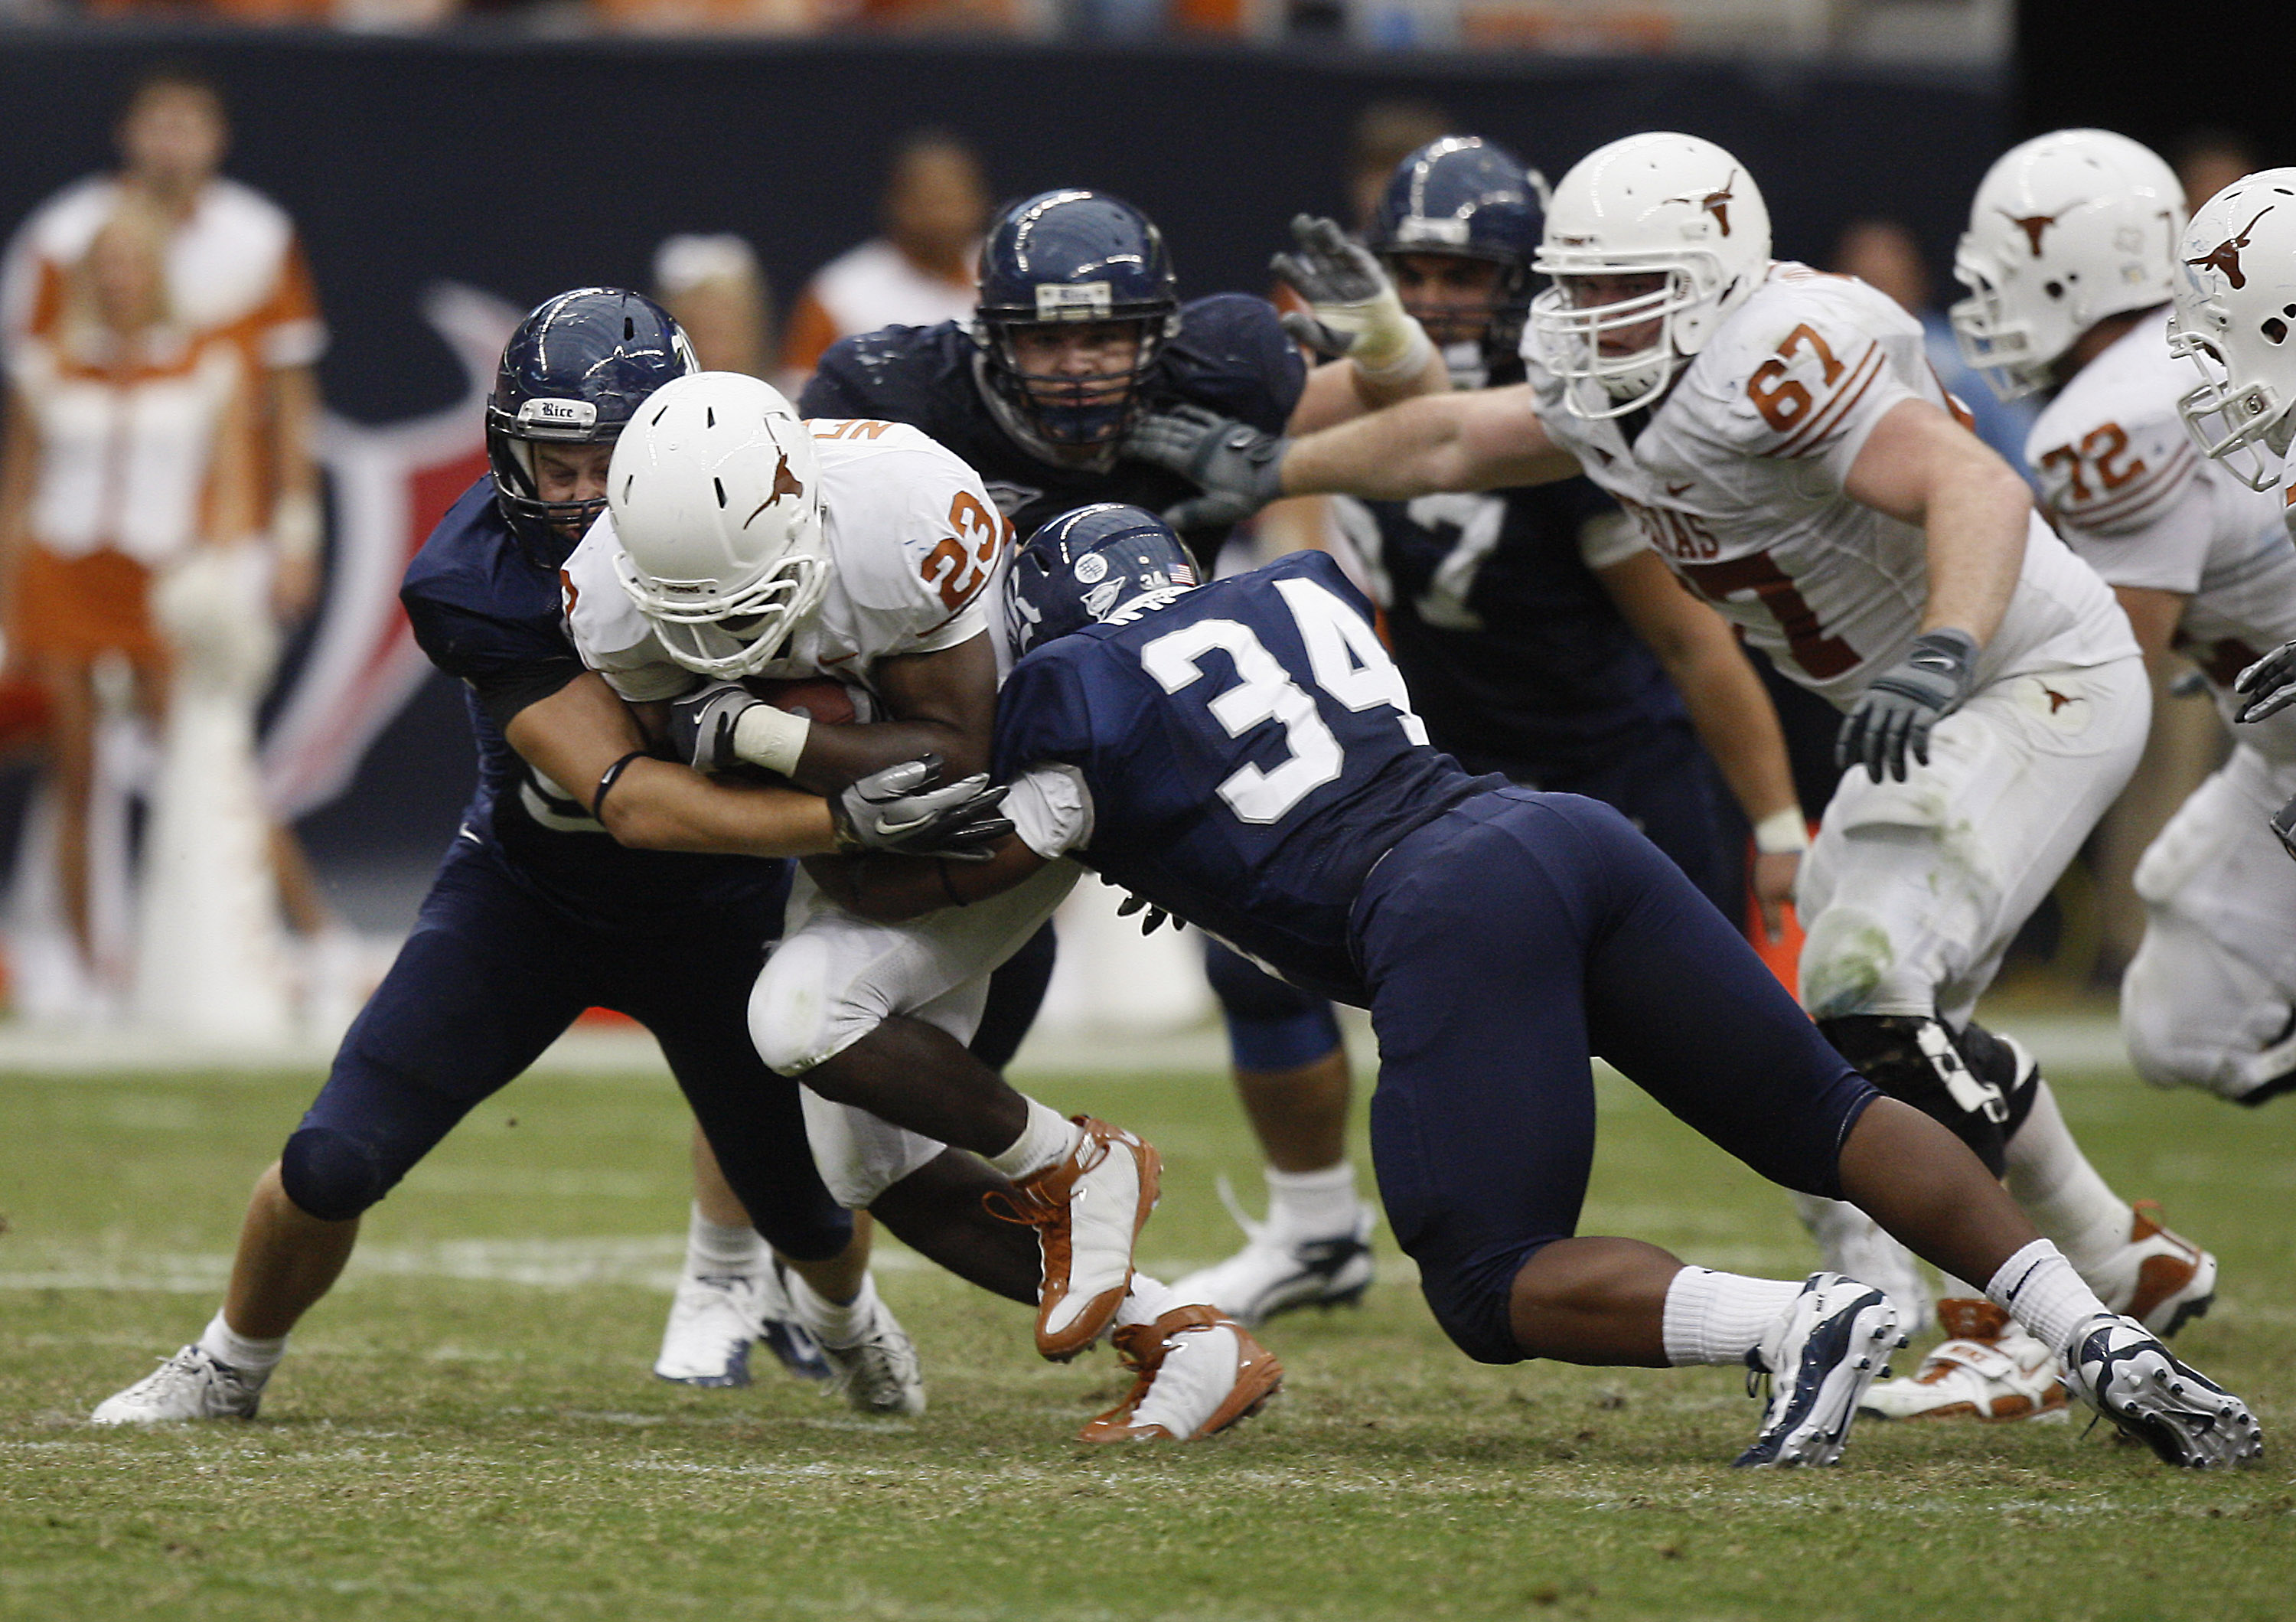 HOUSTON - SEPTEMBER 04:  Running back Tre' Newton #23 of the Texas Longhorns is tackled by linebacker Cameron Nwosu #34 of the Rice Owls at Reliant Stadium on September 4, 2010 in Houston, Texas.  (Photo by Bob Levey/Getty Images)